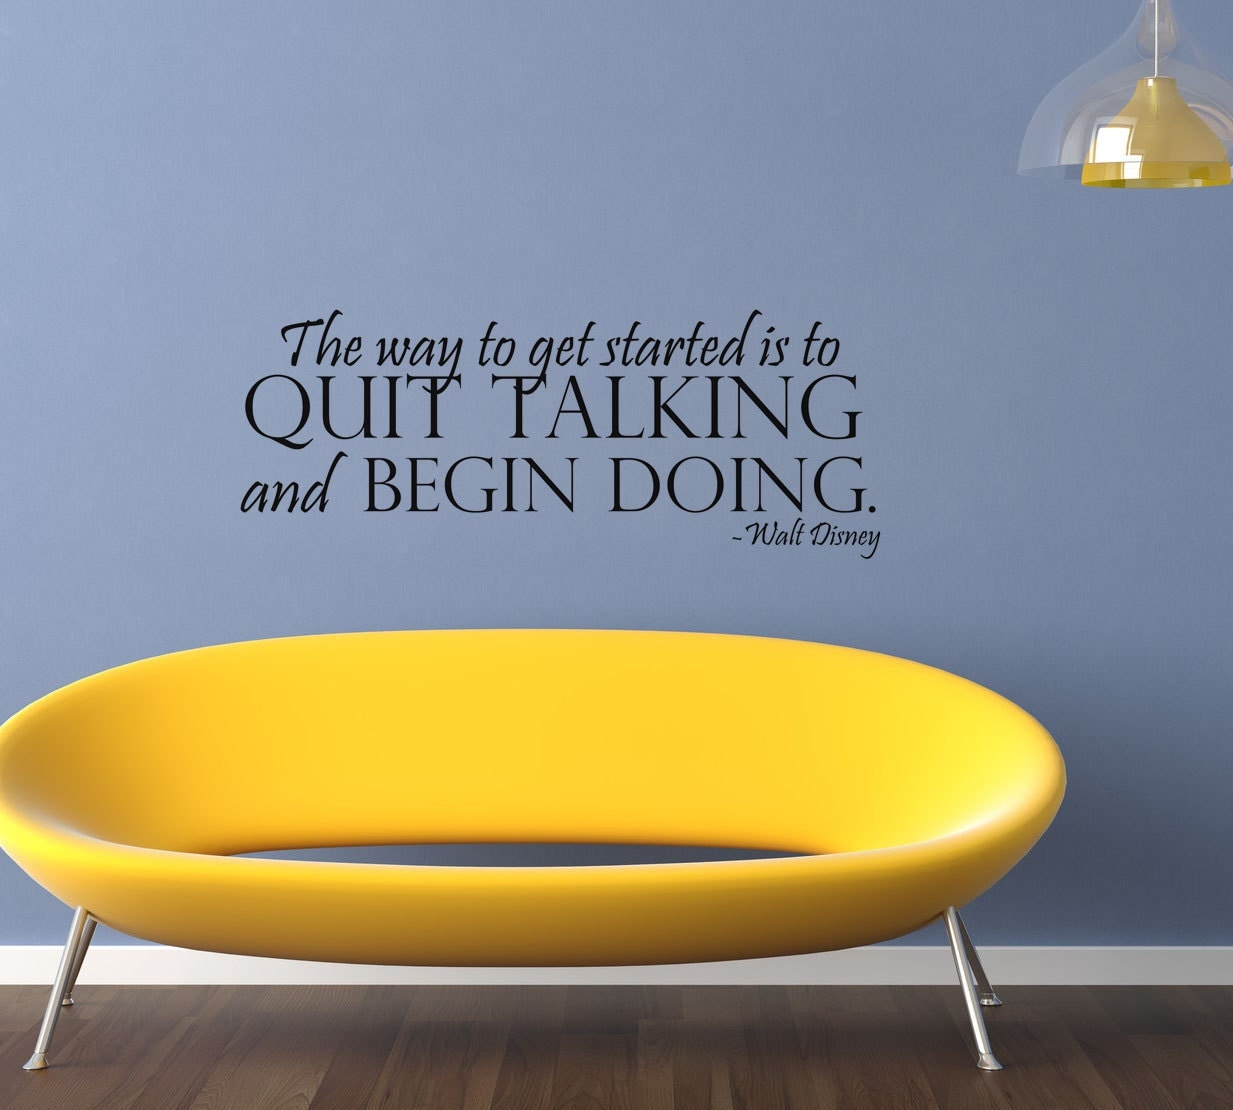 Wall Art Quotes Disney : Walt disney art wall decals stickers by villagevinepress